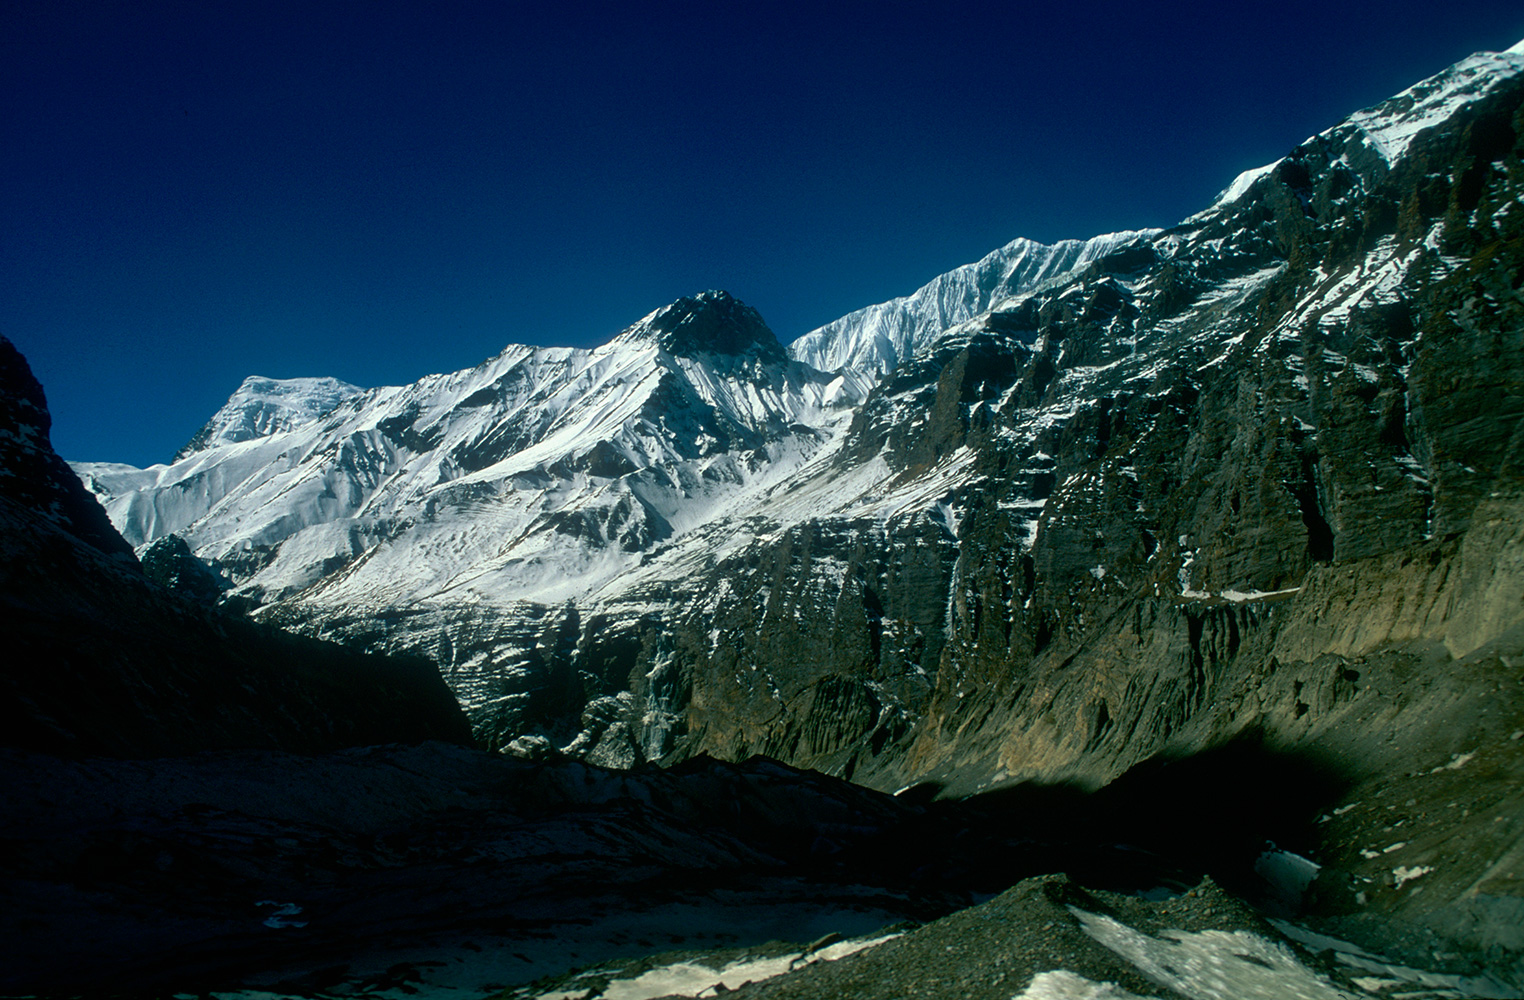 A view back south-west from the final approach to Dhaulagiri base-camp (4750m). The summit of Dhaulagiri V (7618m) is just visible, left of centre.Nikon FM2, 24mm, Fuji Velvia